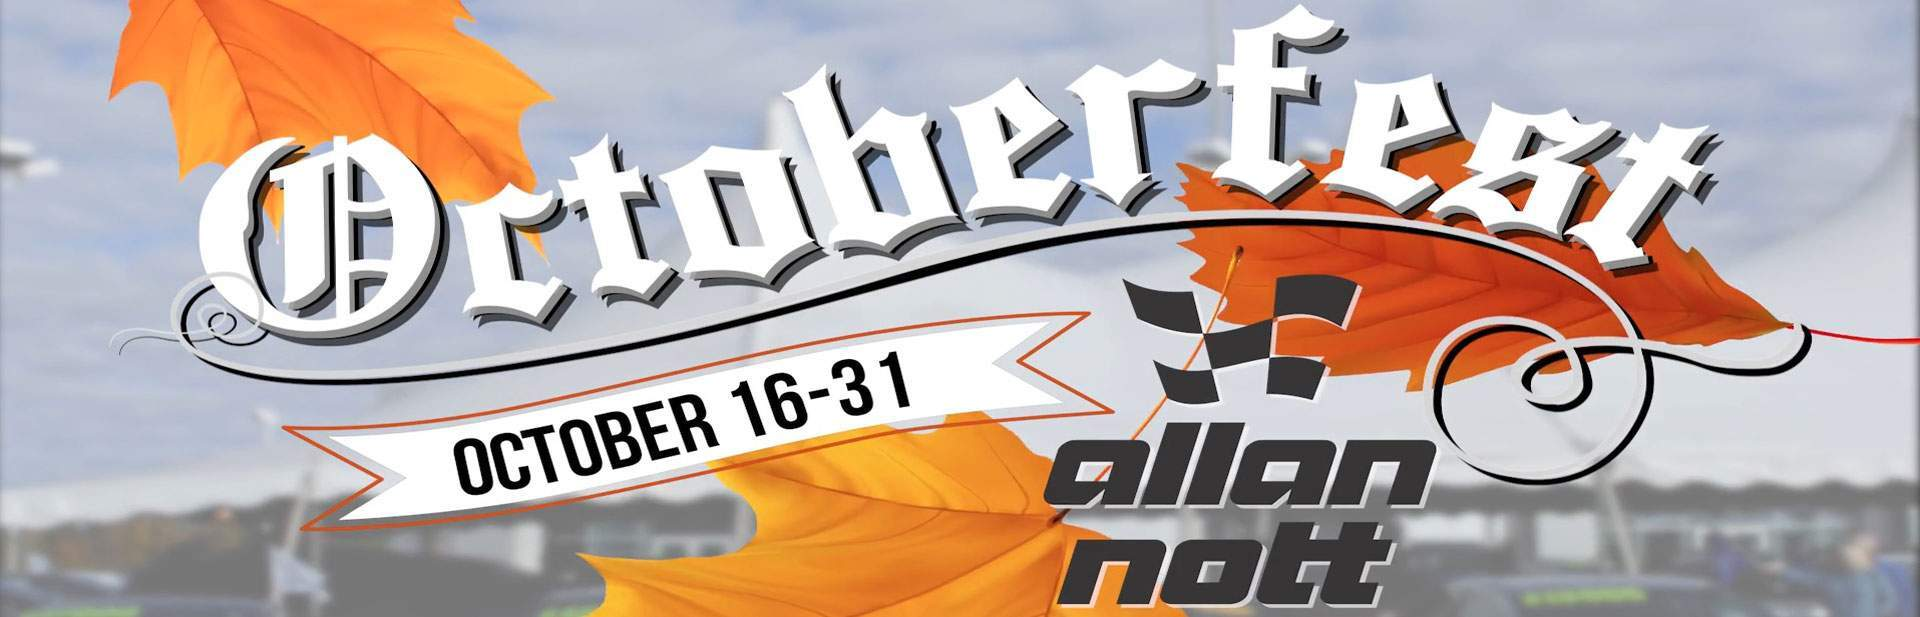 Octoberfest is returning to Allan Nott Toyota! October 16-31st!